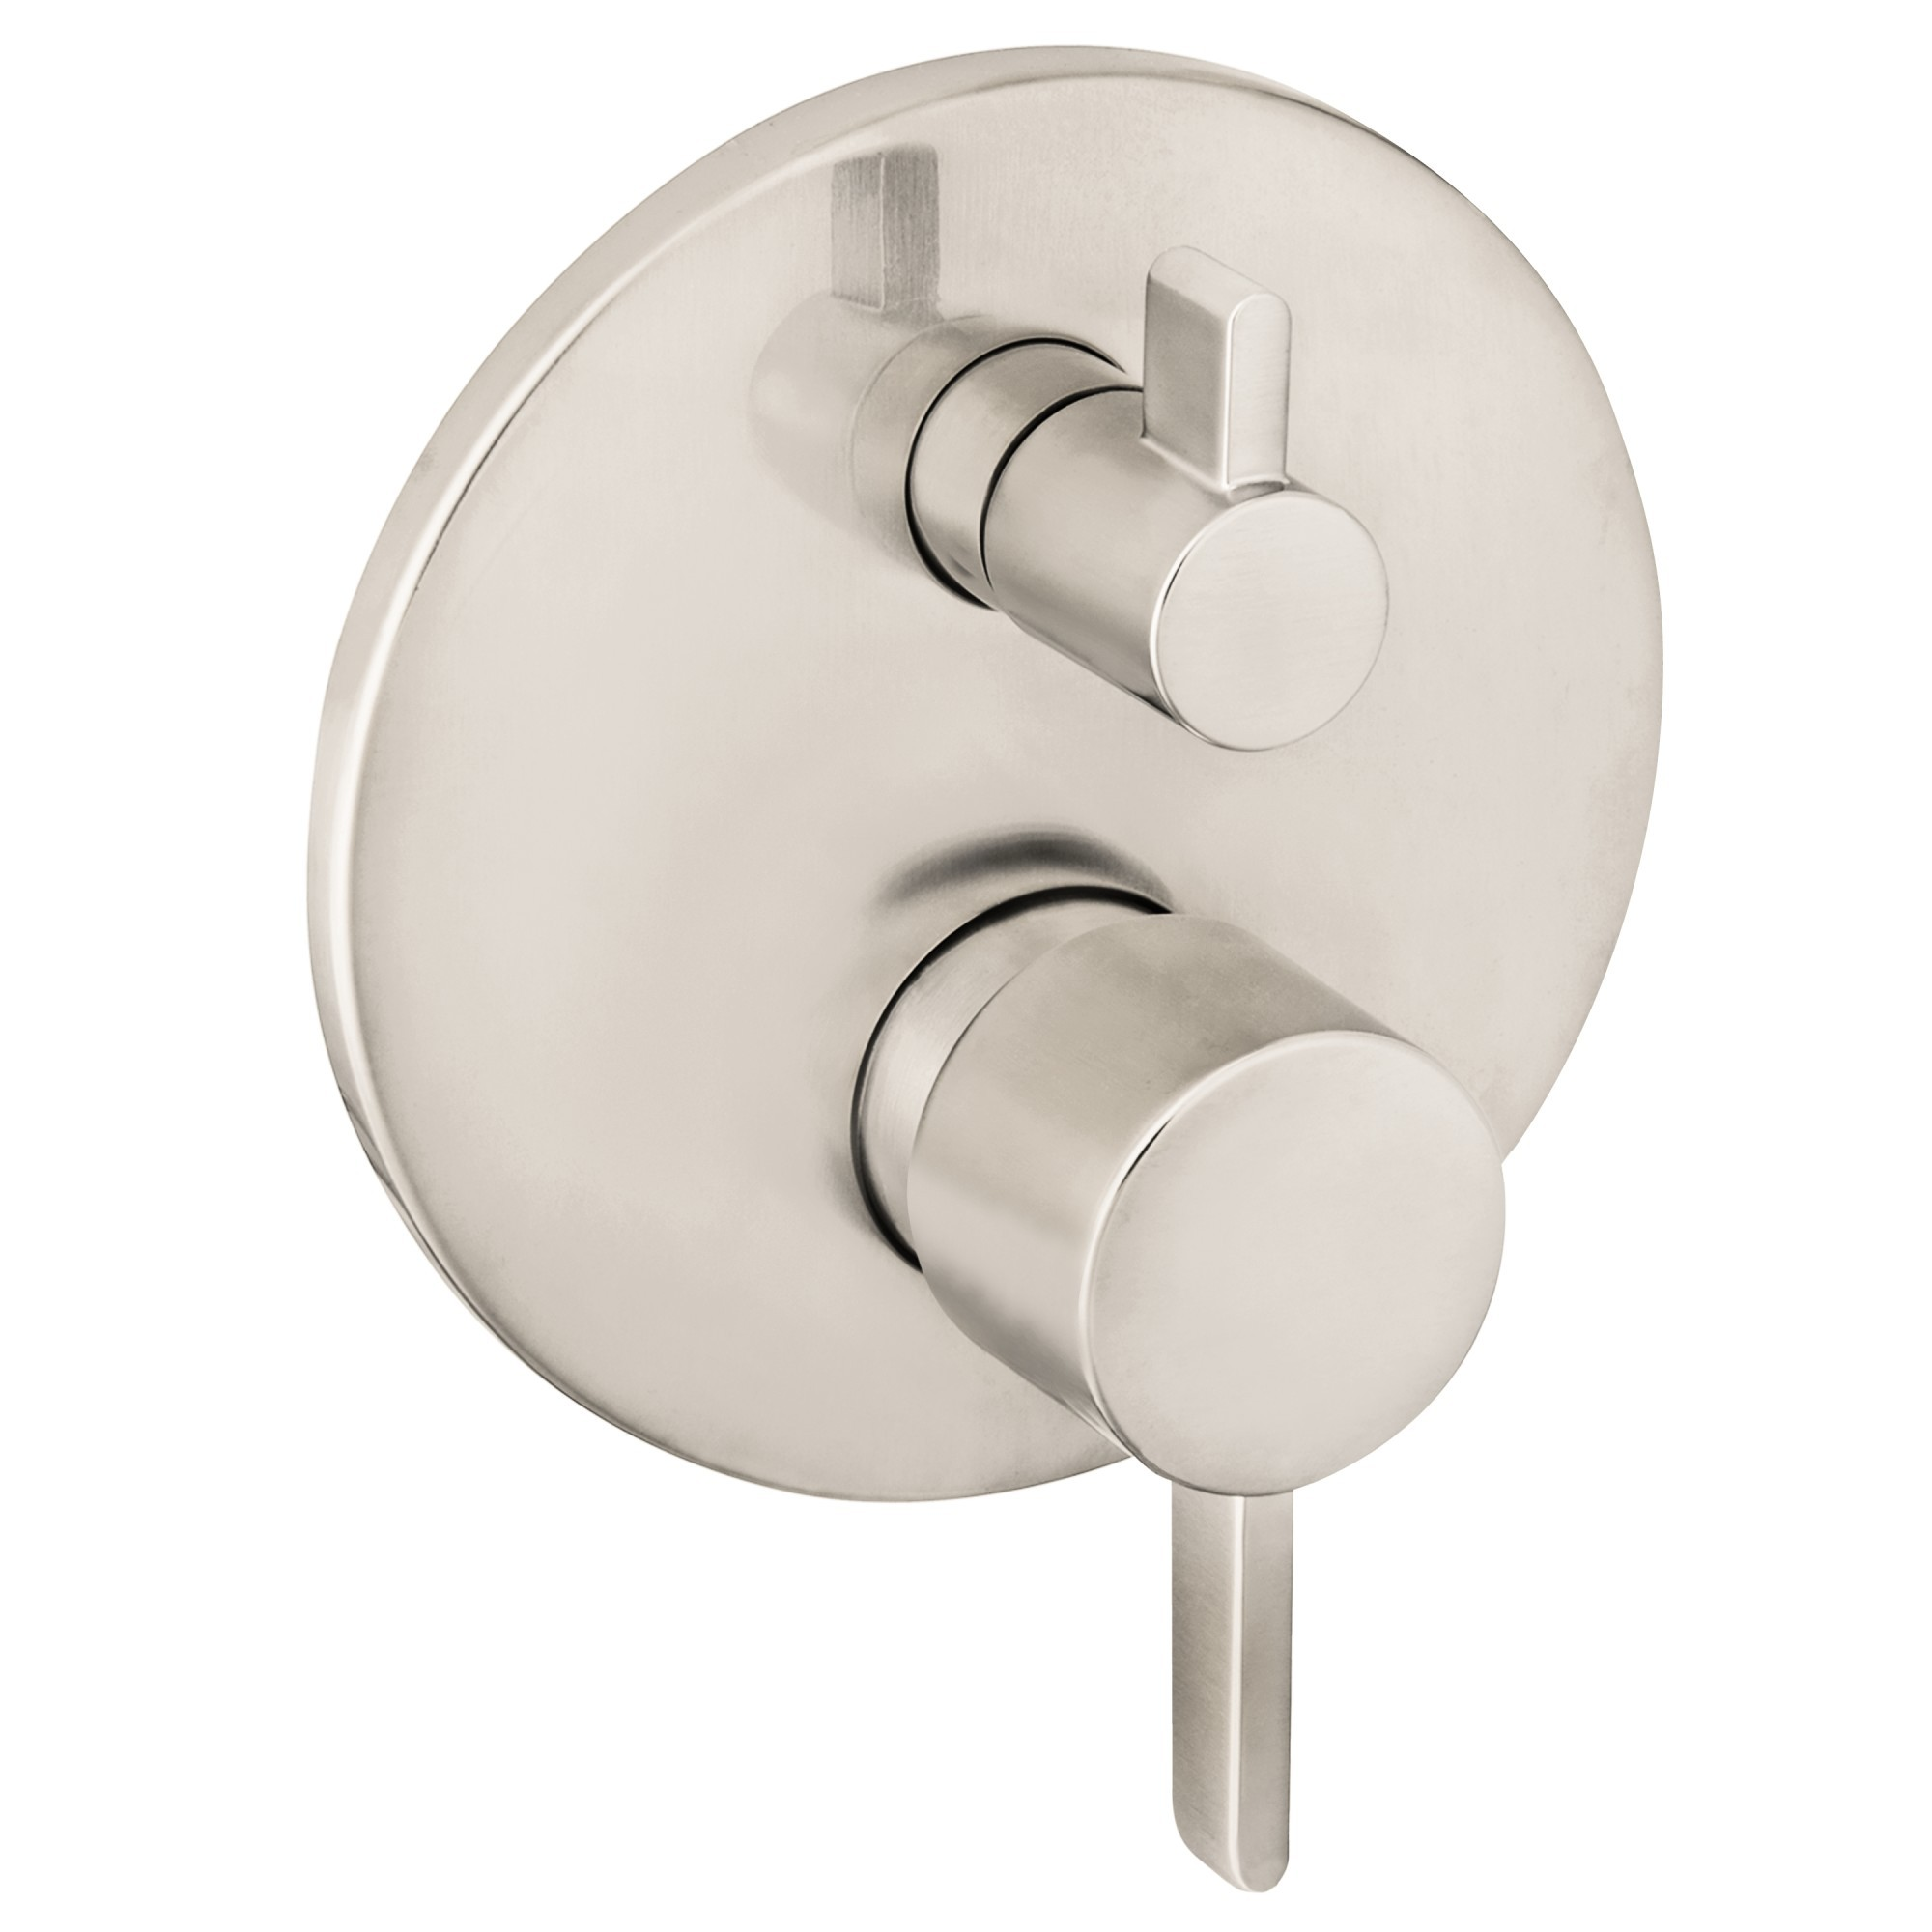 Hansgrohe 04447 S Pressure Balanced Valve Trim With Integrated